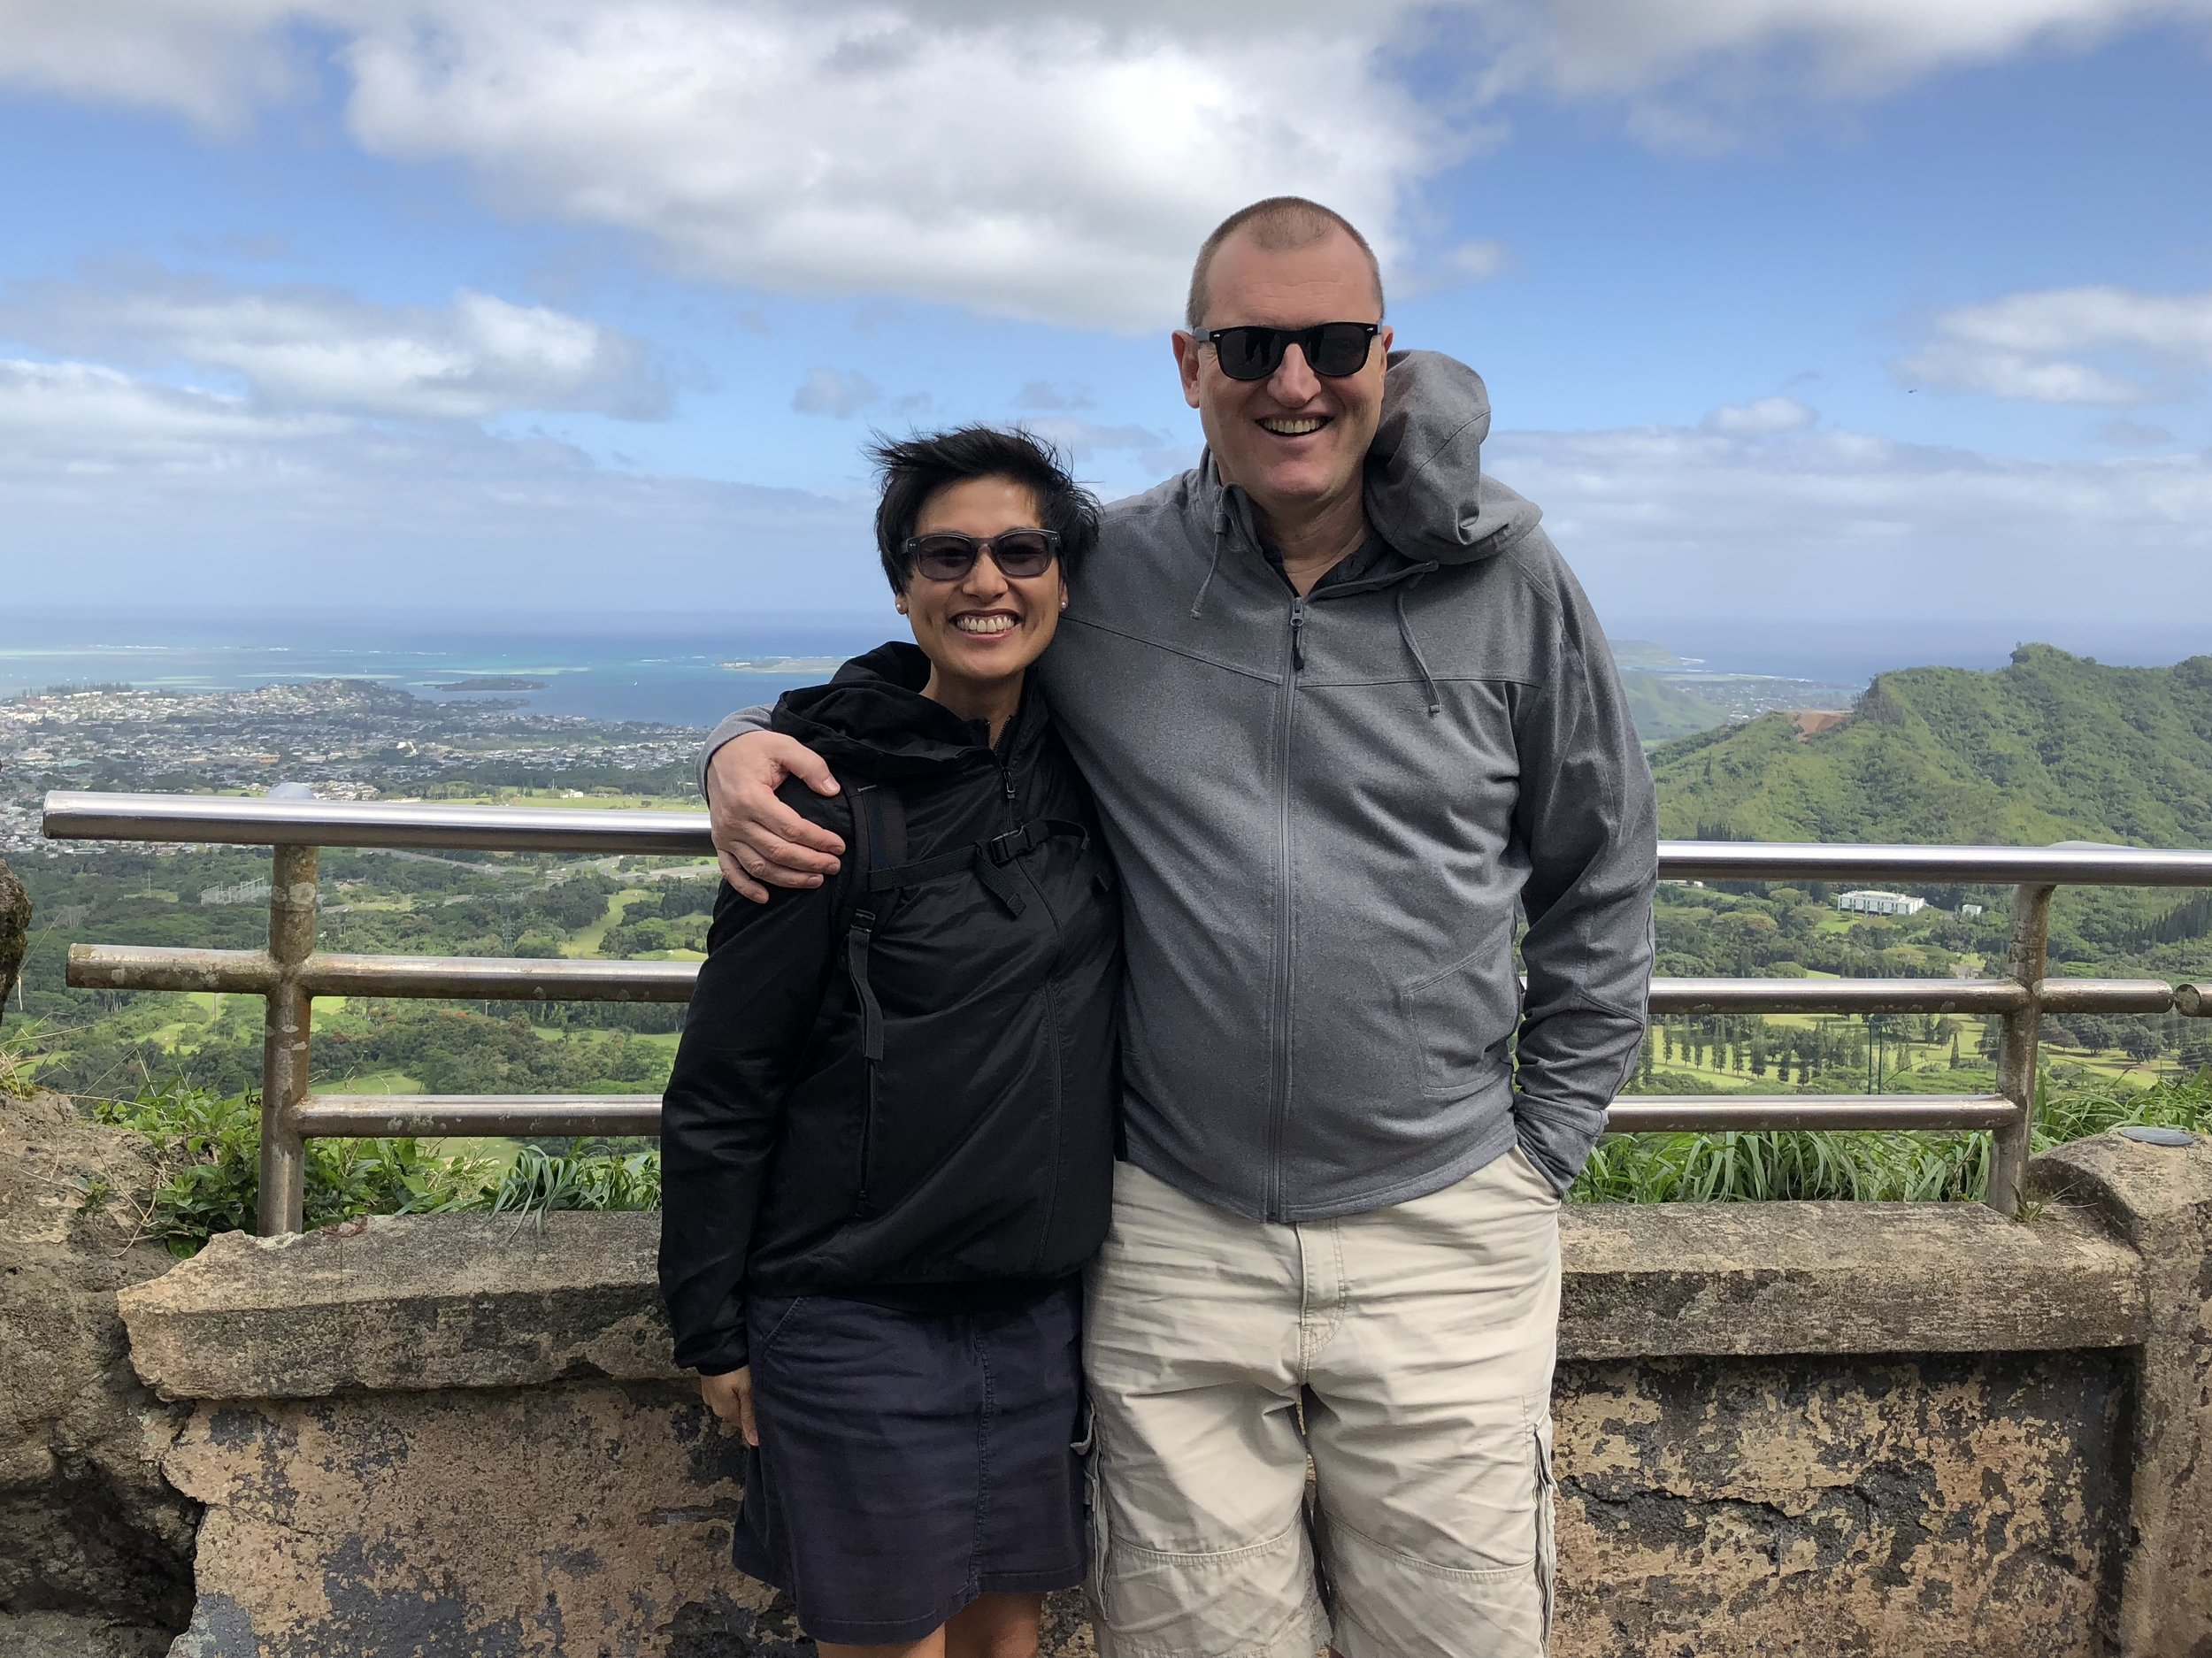 Braving the strong winds to check out the beautiful views from the Nu'uanu Pali Lookout on Oahu.